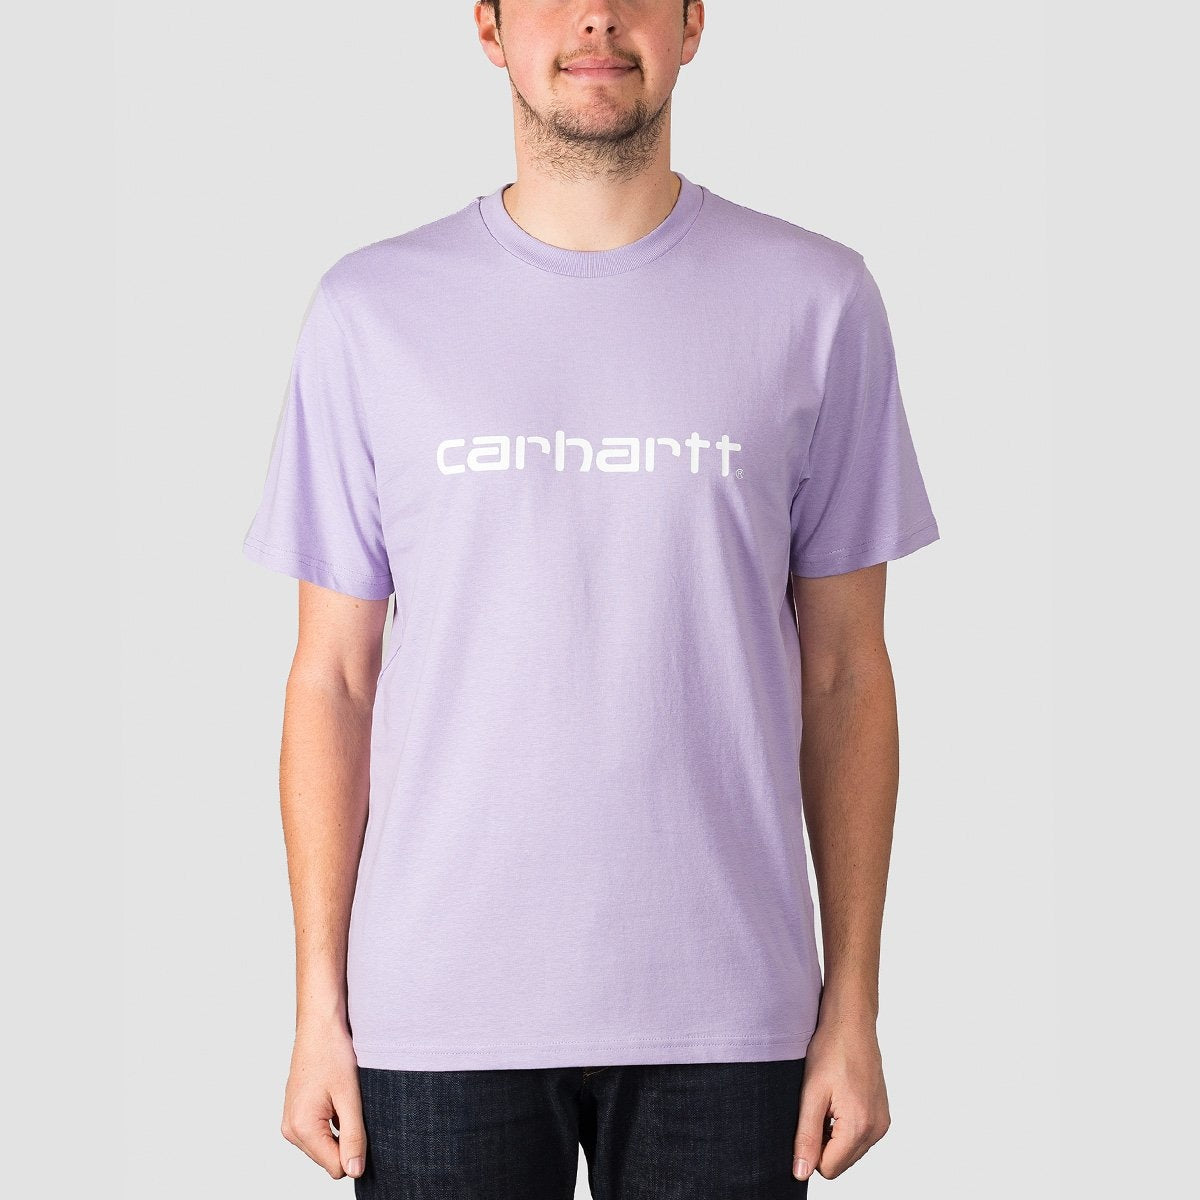 Carhartt WIP Script Tee Soft Lavender/White - Clothing